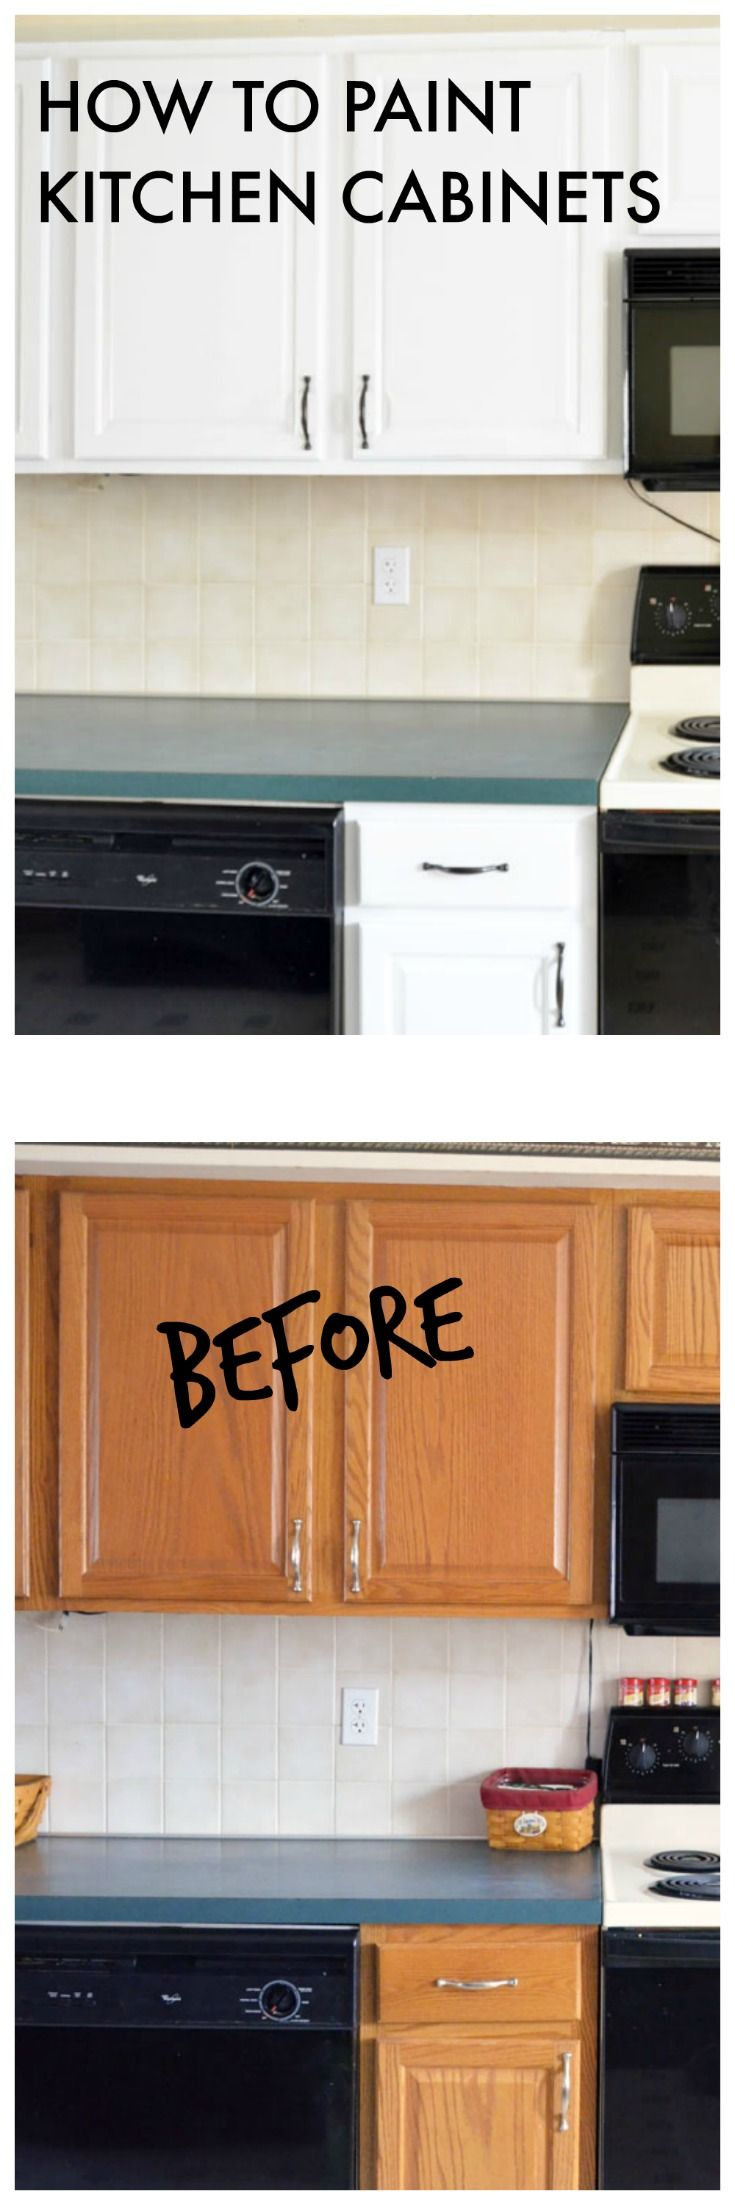 17 best images about kitchen ideas on pinterest cabinets for Best way to remove paint from kitchen cabinets